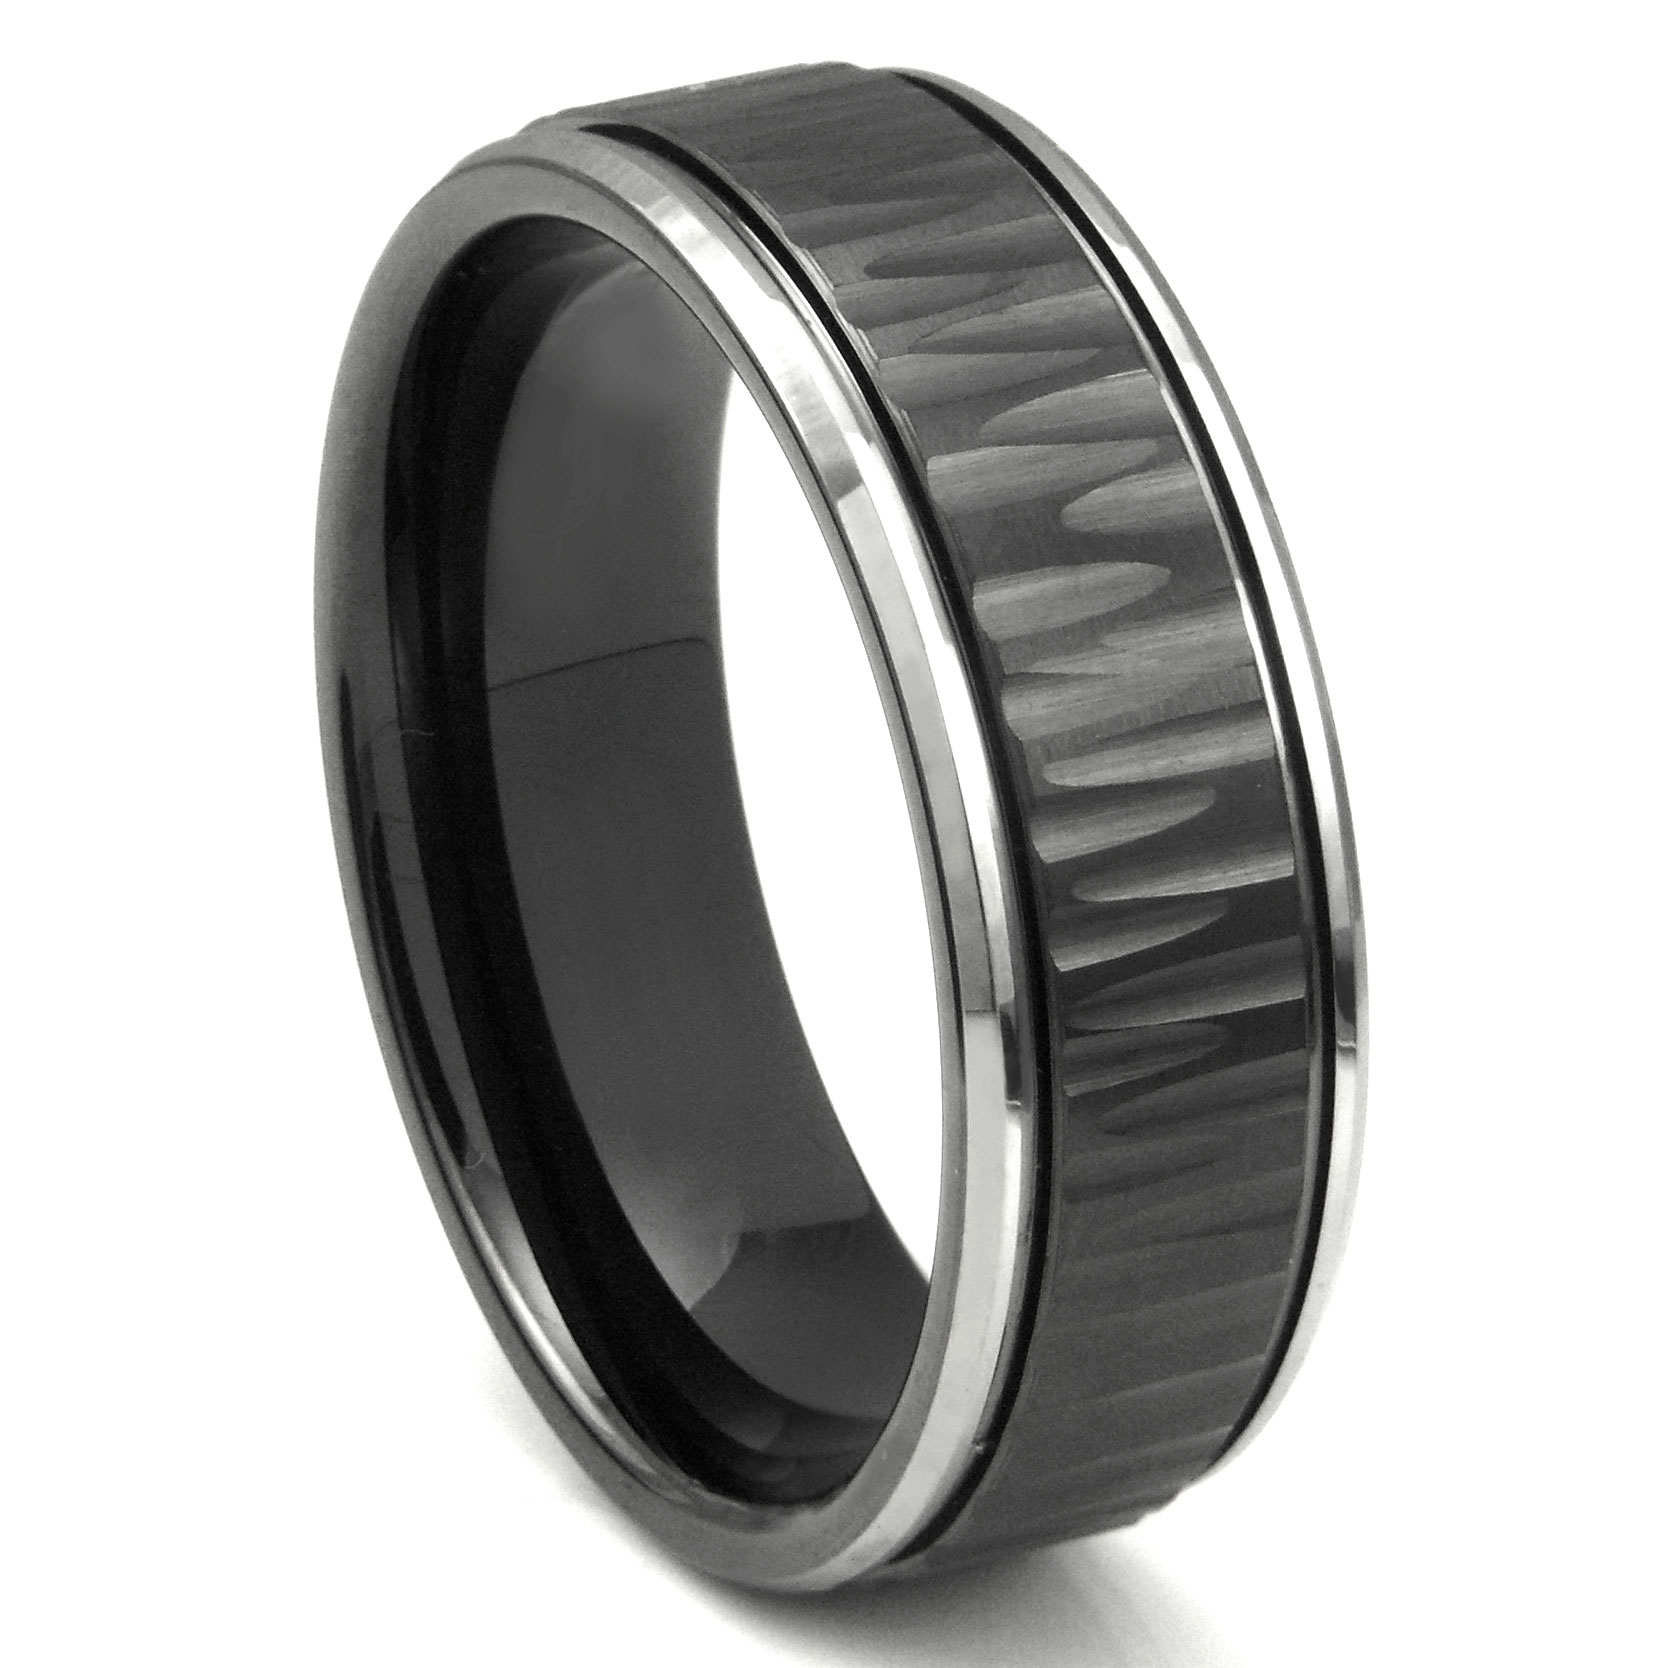 carbide itm center brushed ring gold rings silver band wedding tungsten women black mens